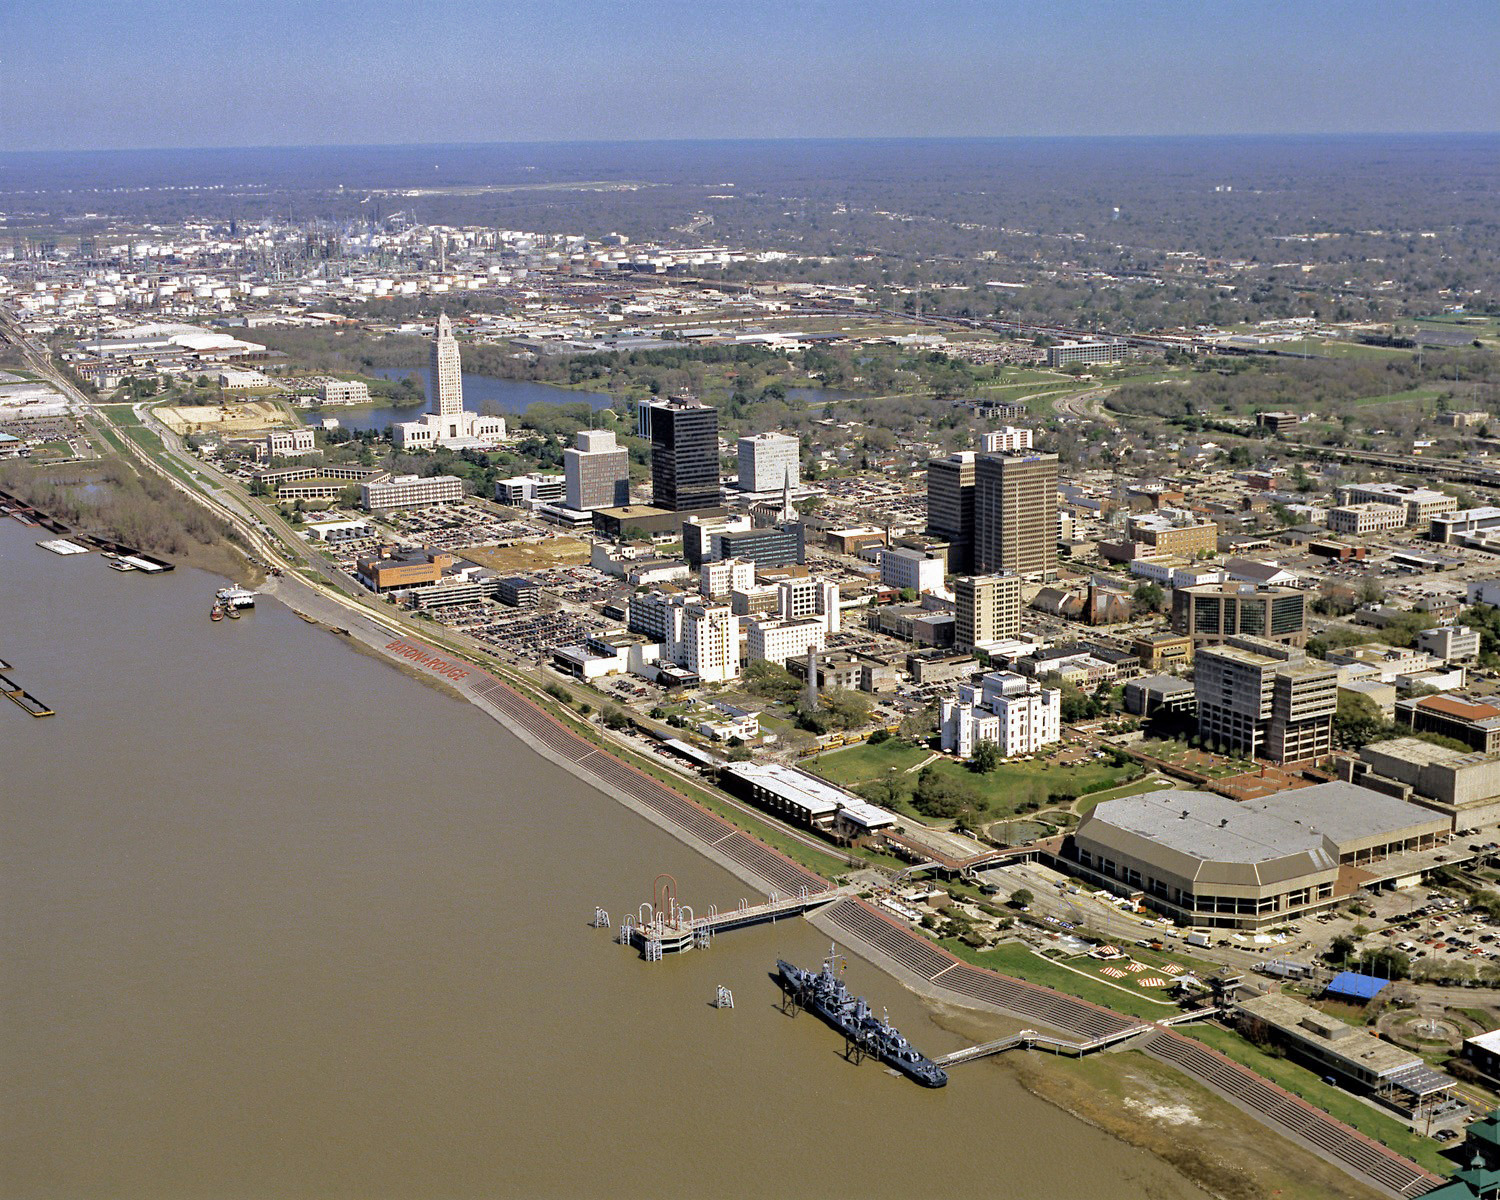 Baton_Rouge_Louisiana_waterfront_aerial_view.jpg